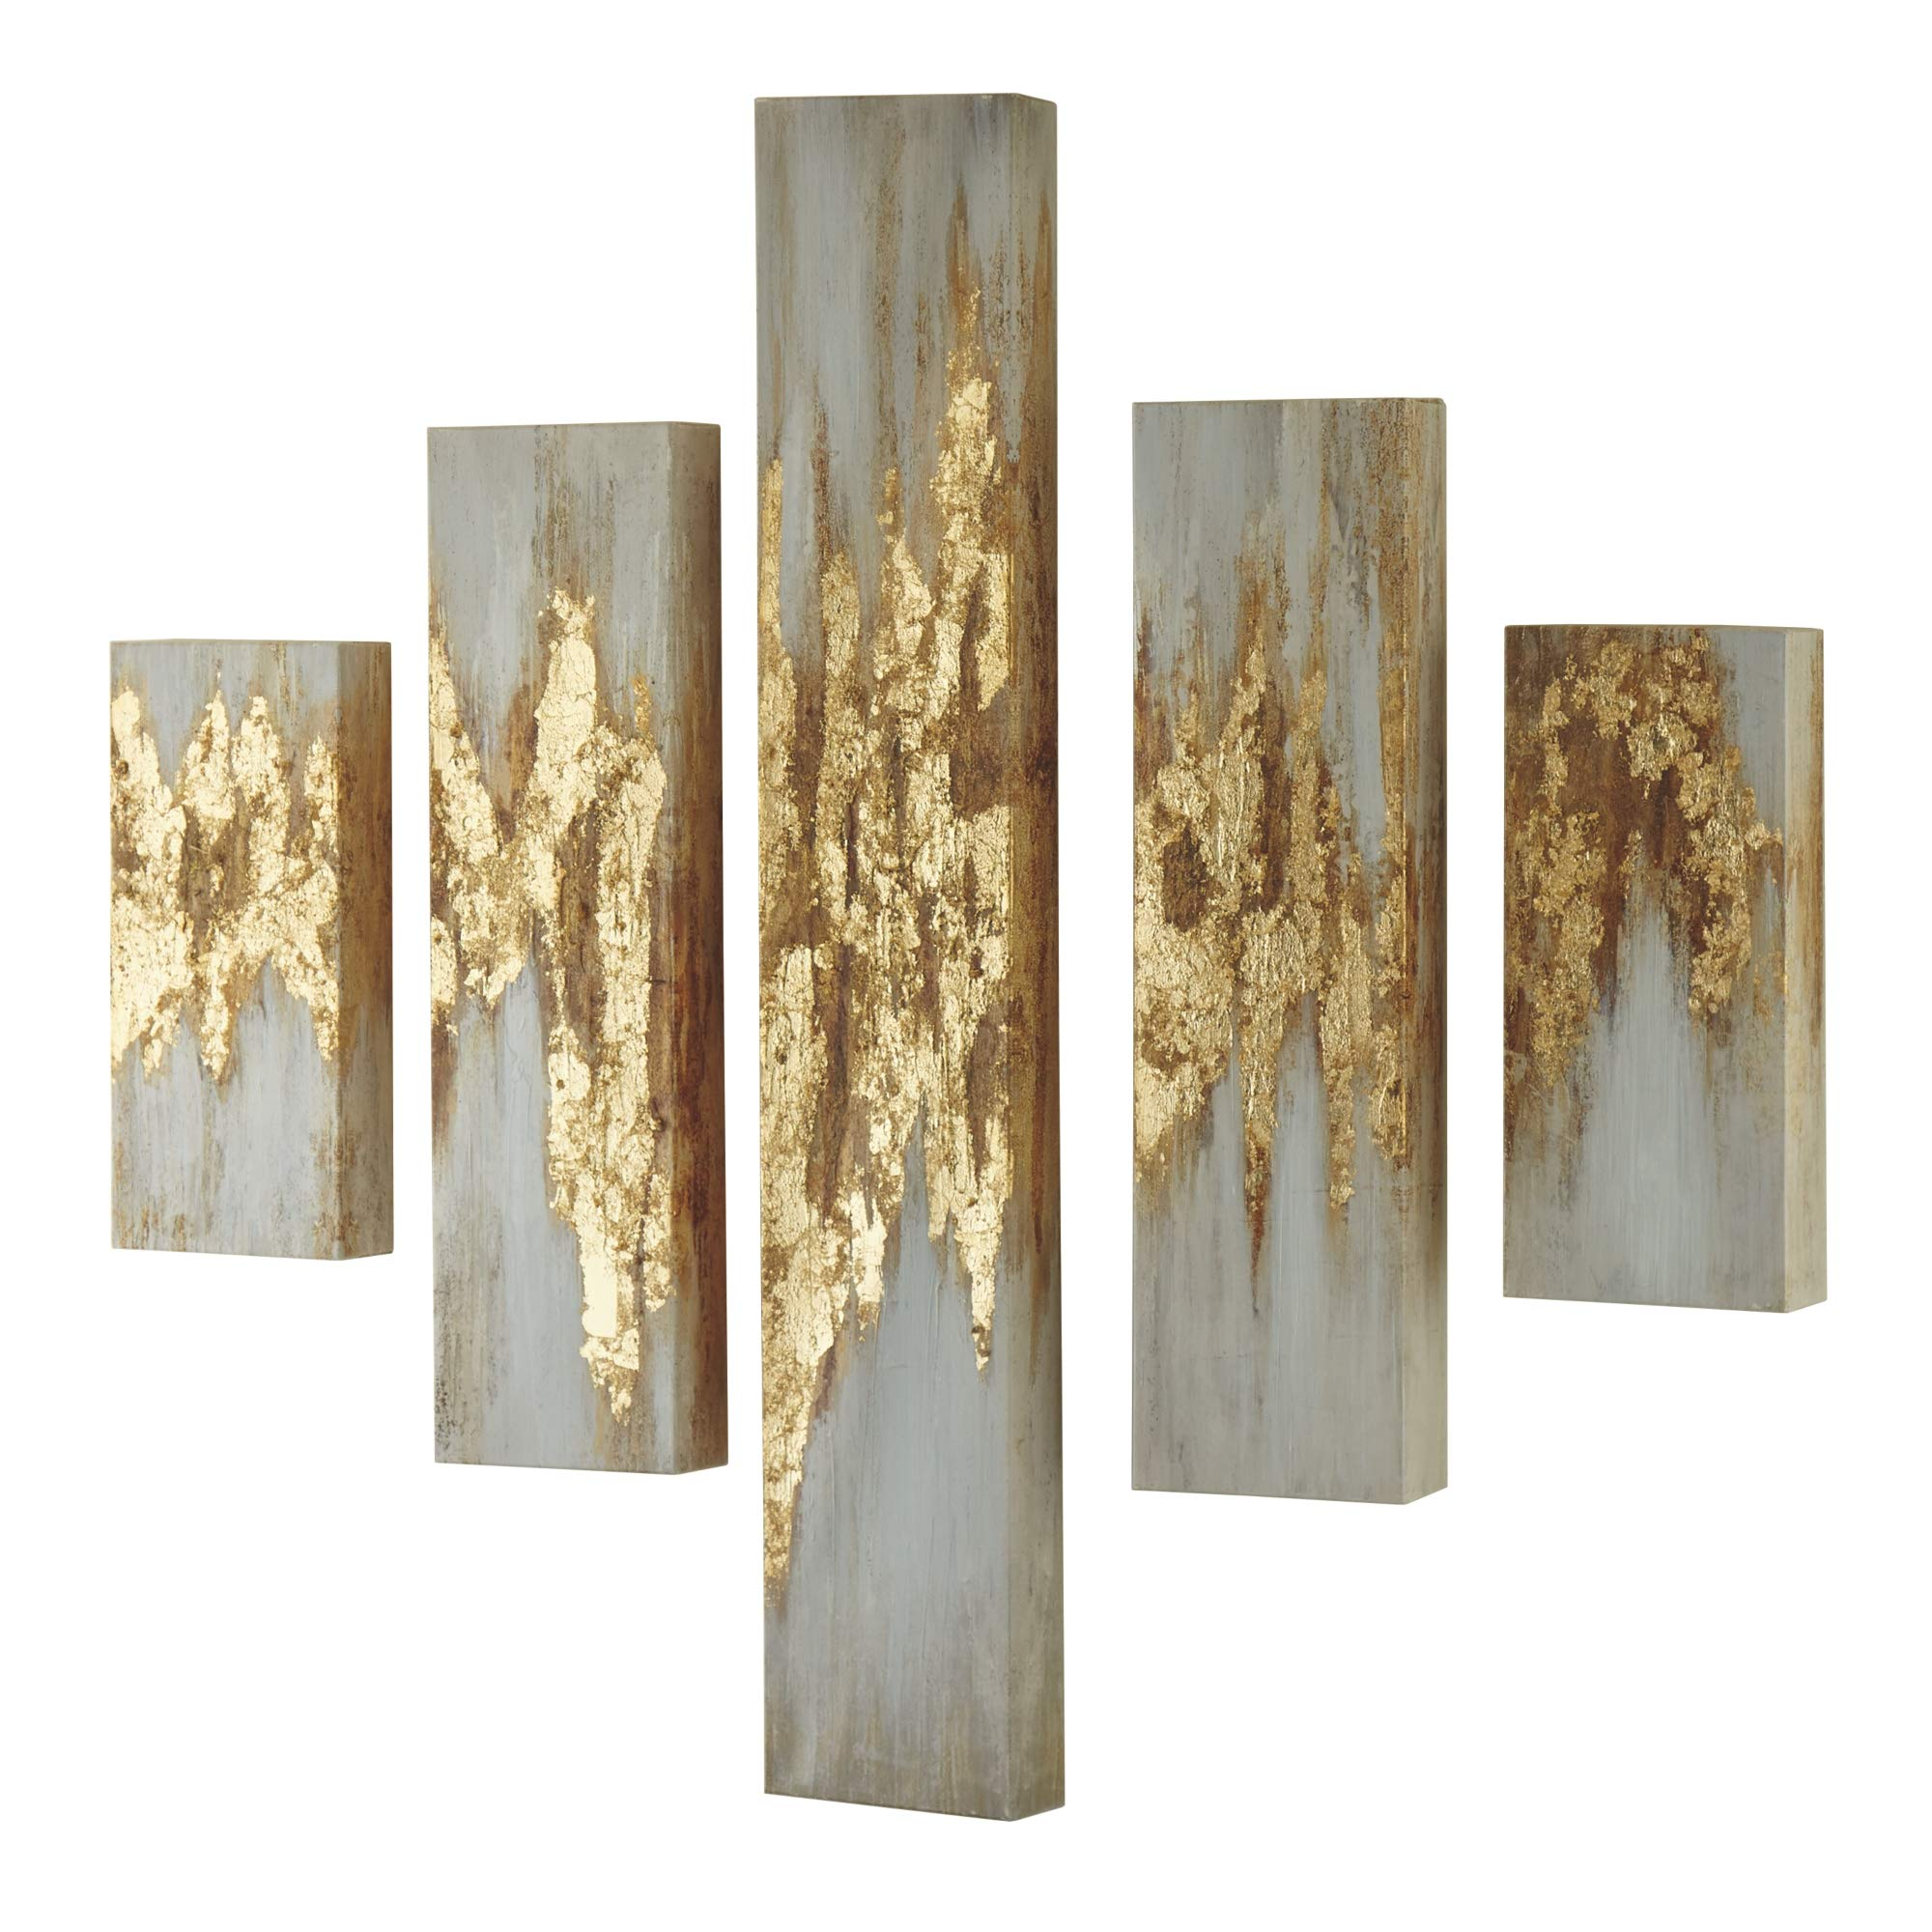 Ashley Furniture Signature Design - Devlan Wall Art - Set of Five - Contemporary Glam - Gold Finish/White by Signature Design by Ashley